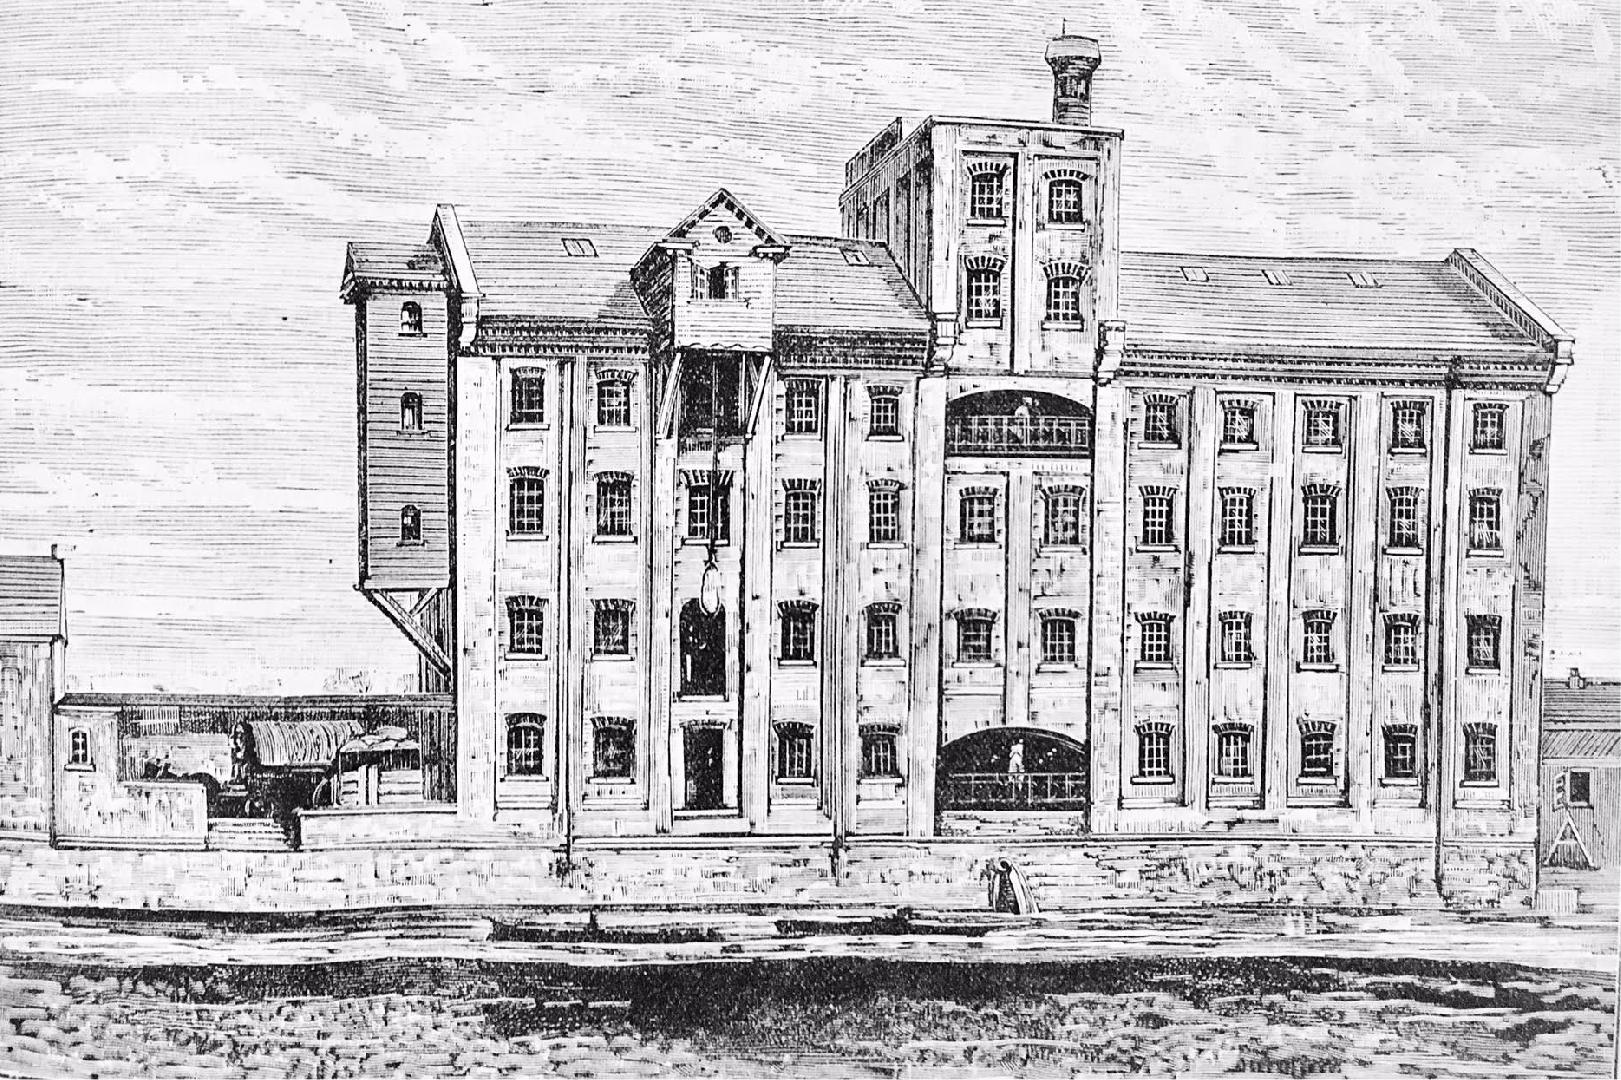 JB Whitworth's new Victoria Roller Flour Mills at West Wellingborough Northamptonshire (Robinson System)